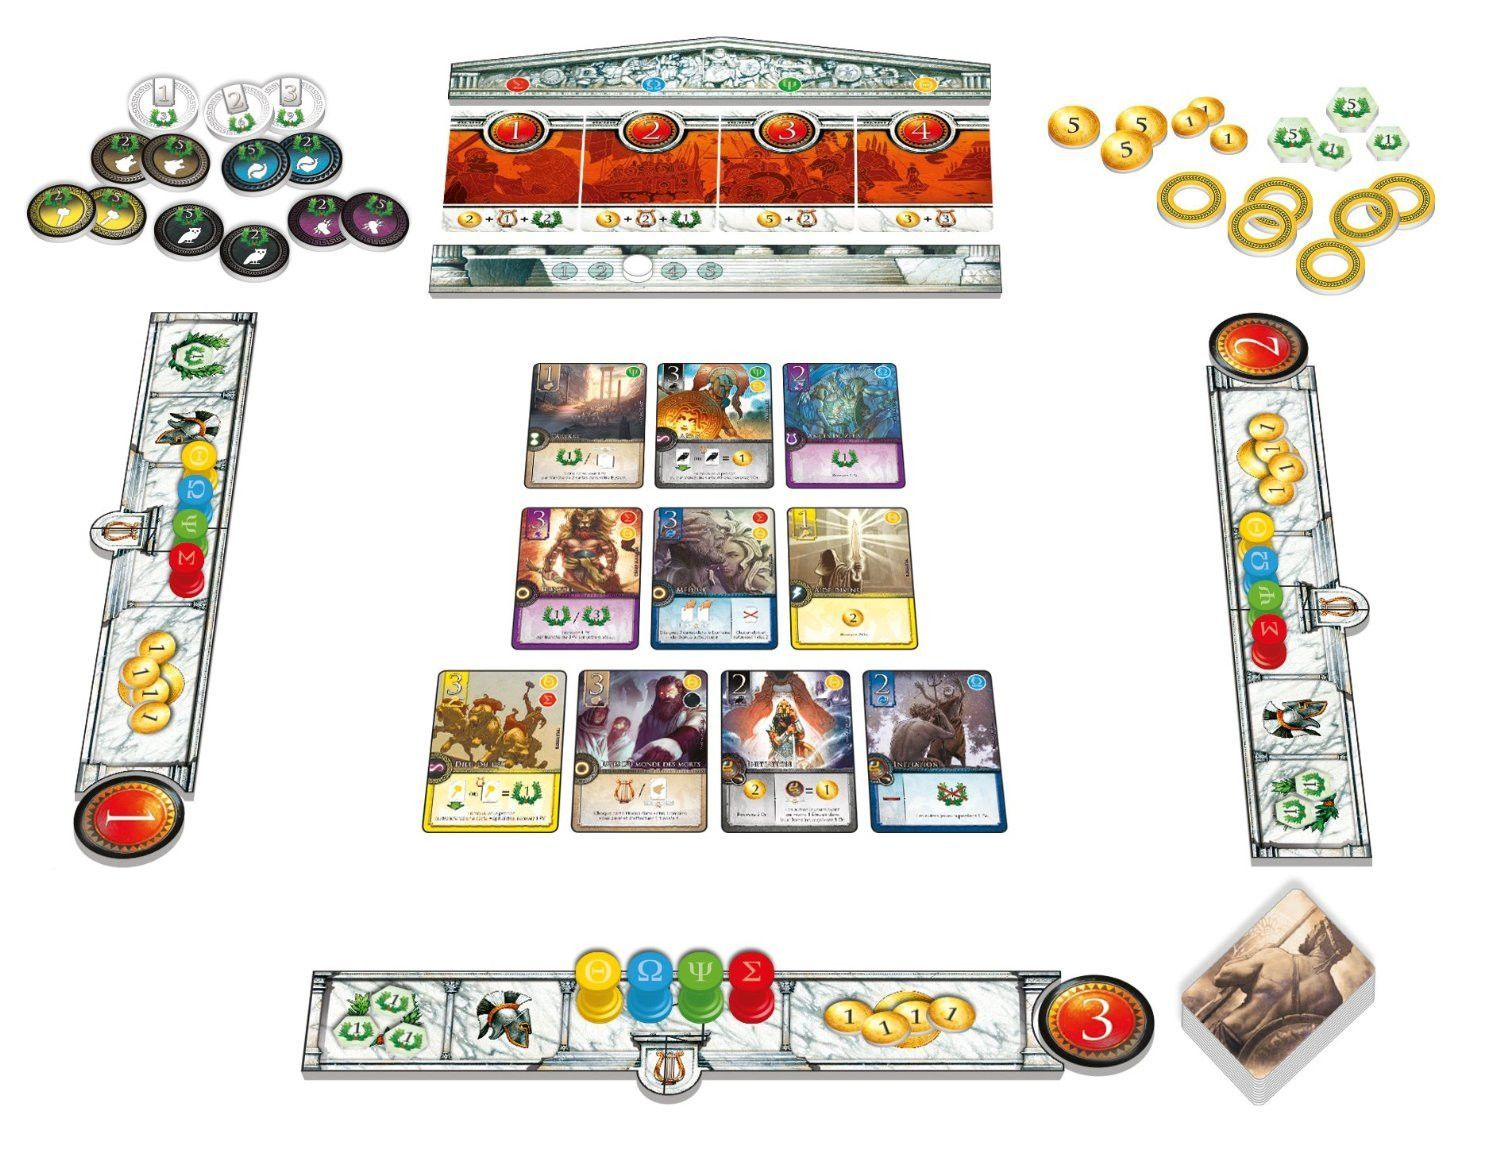 Elysium Board Game Board games, Games, Card games